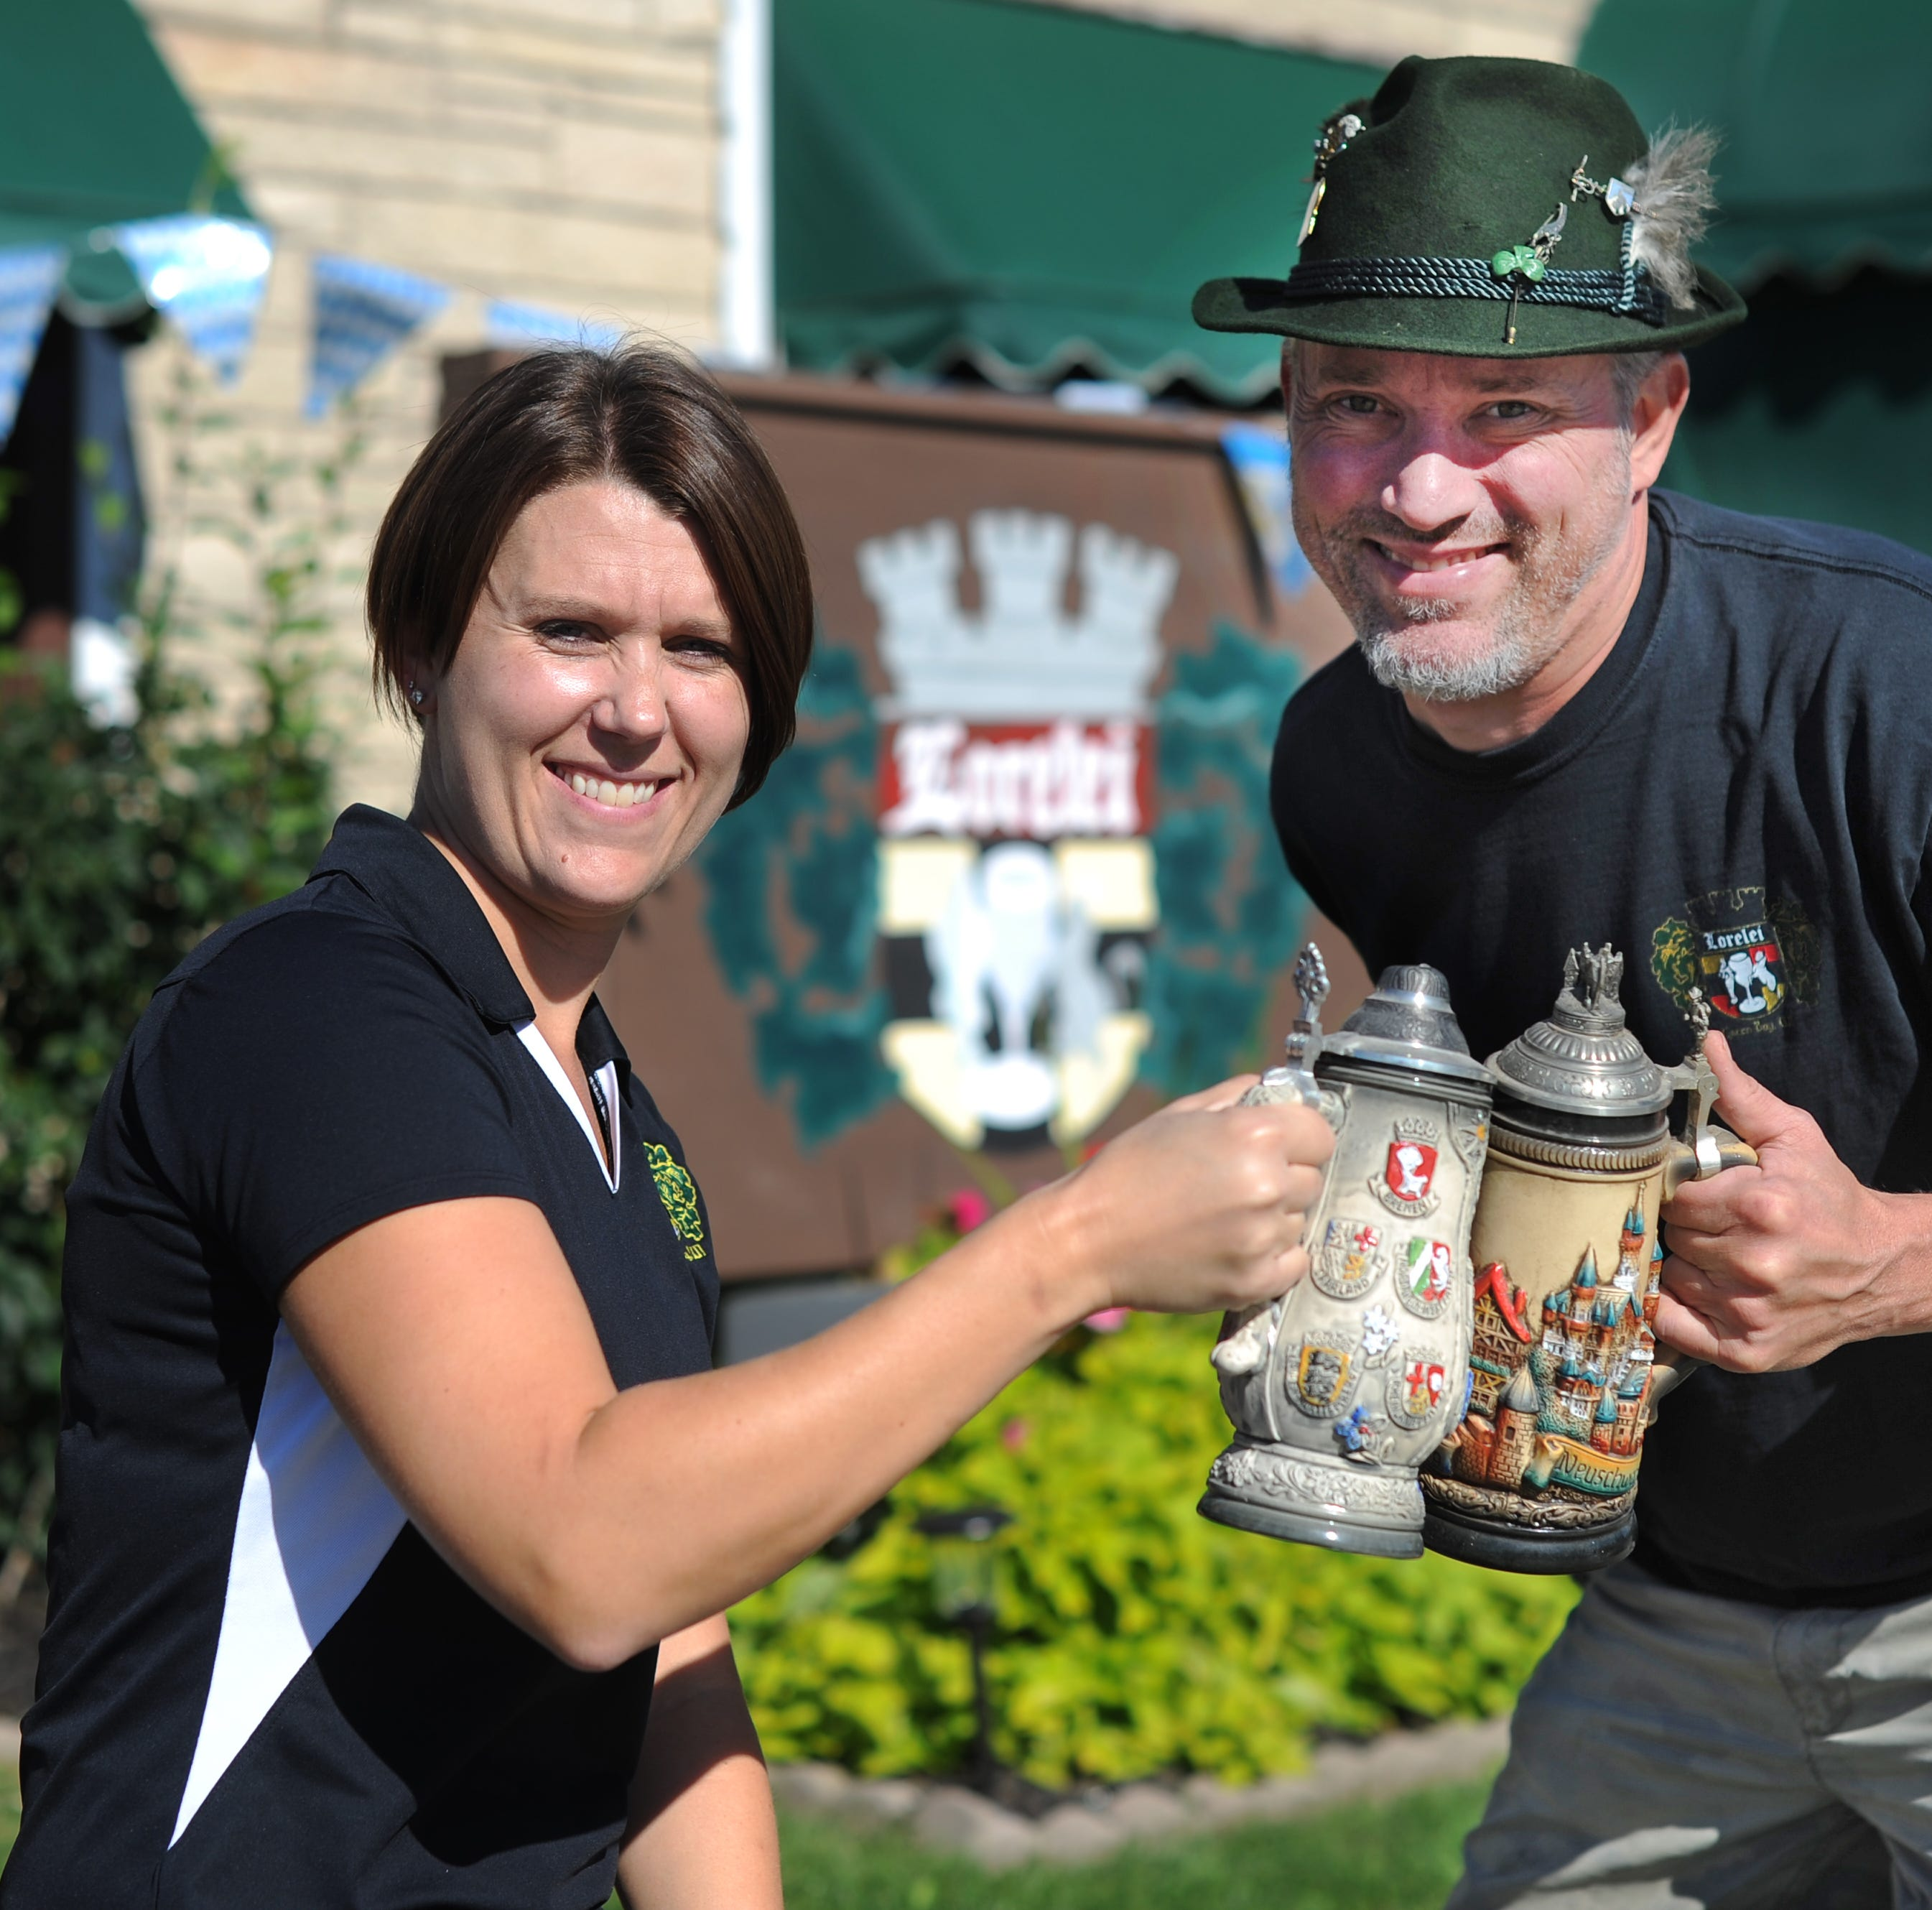 If you've got the stein, local Oktoberfests have the beer, bands and brats